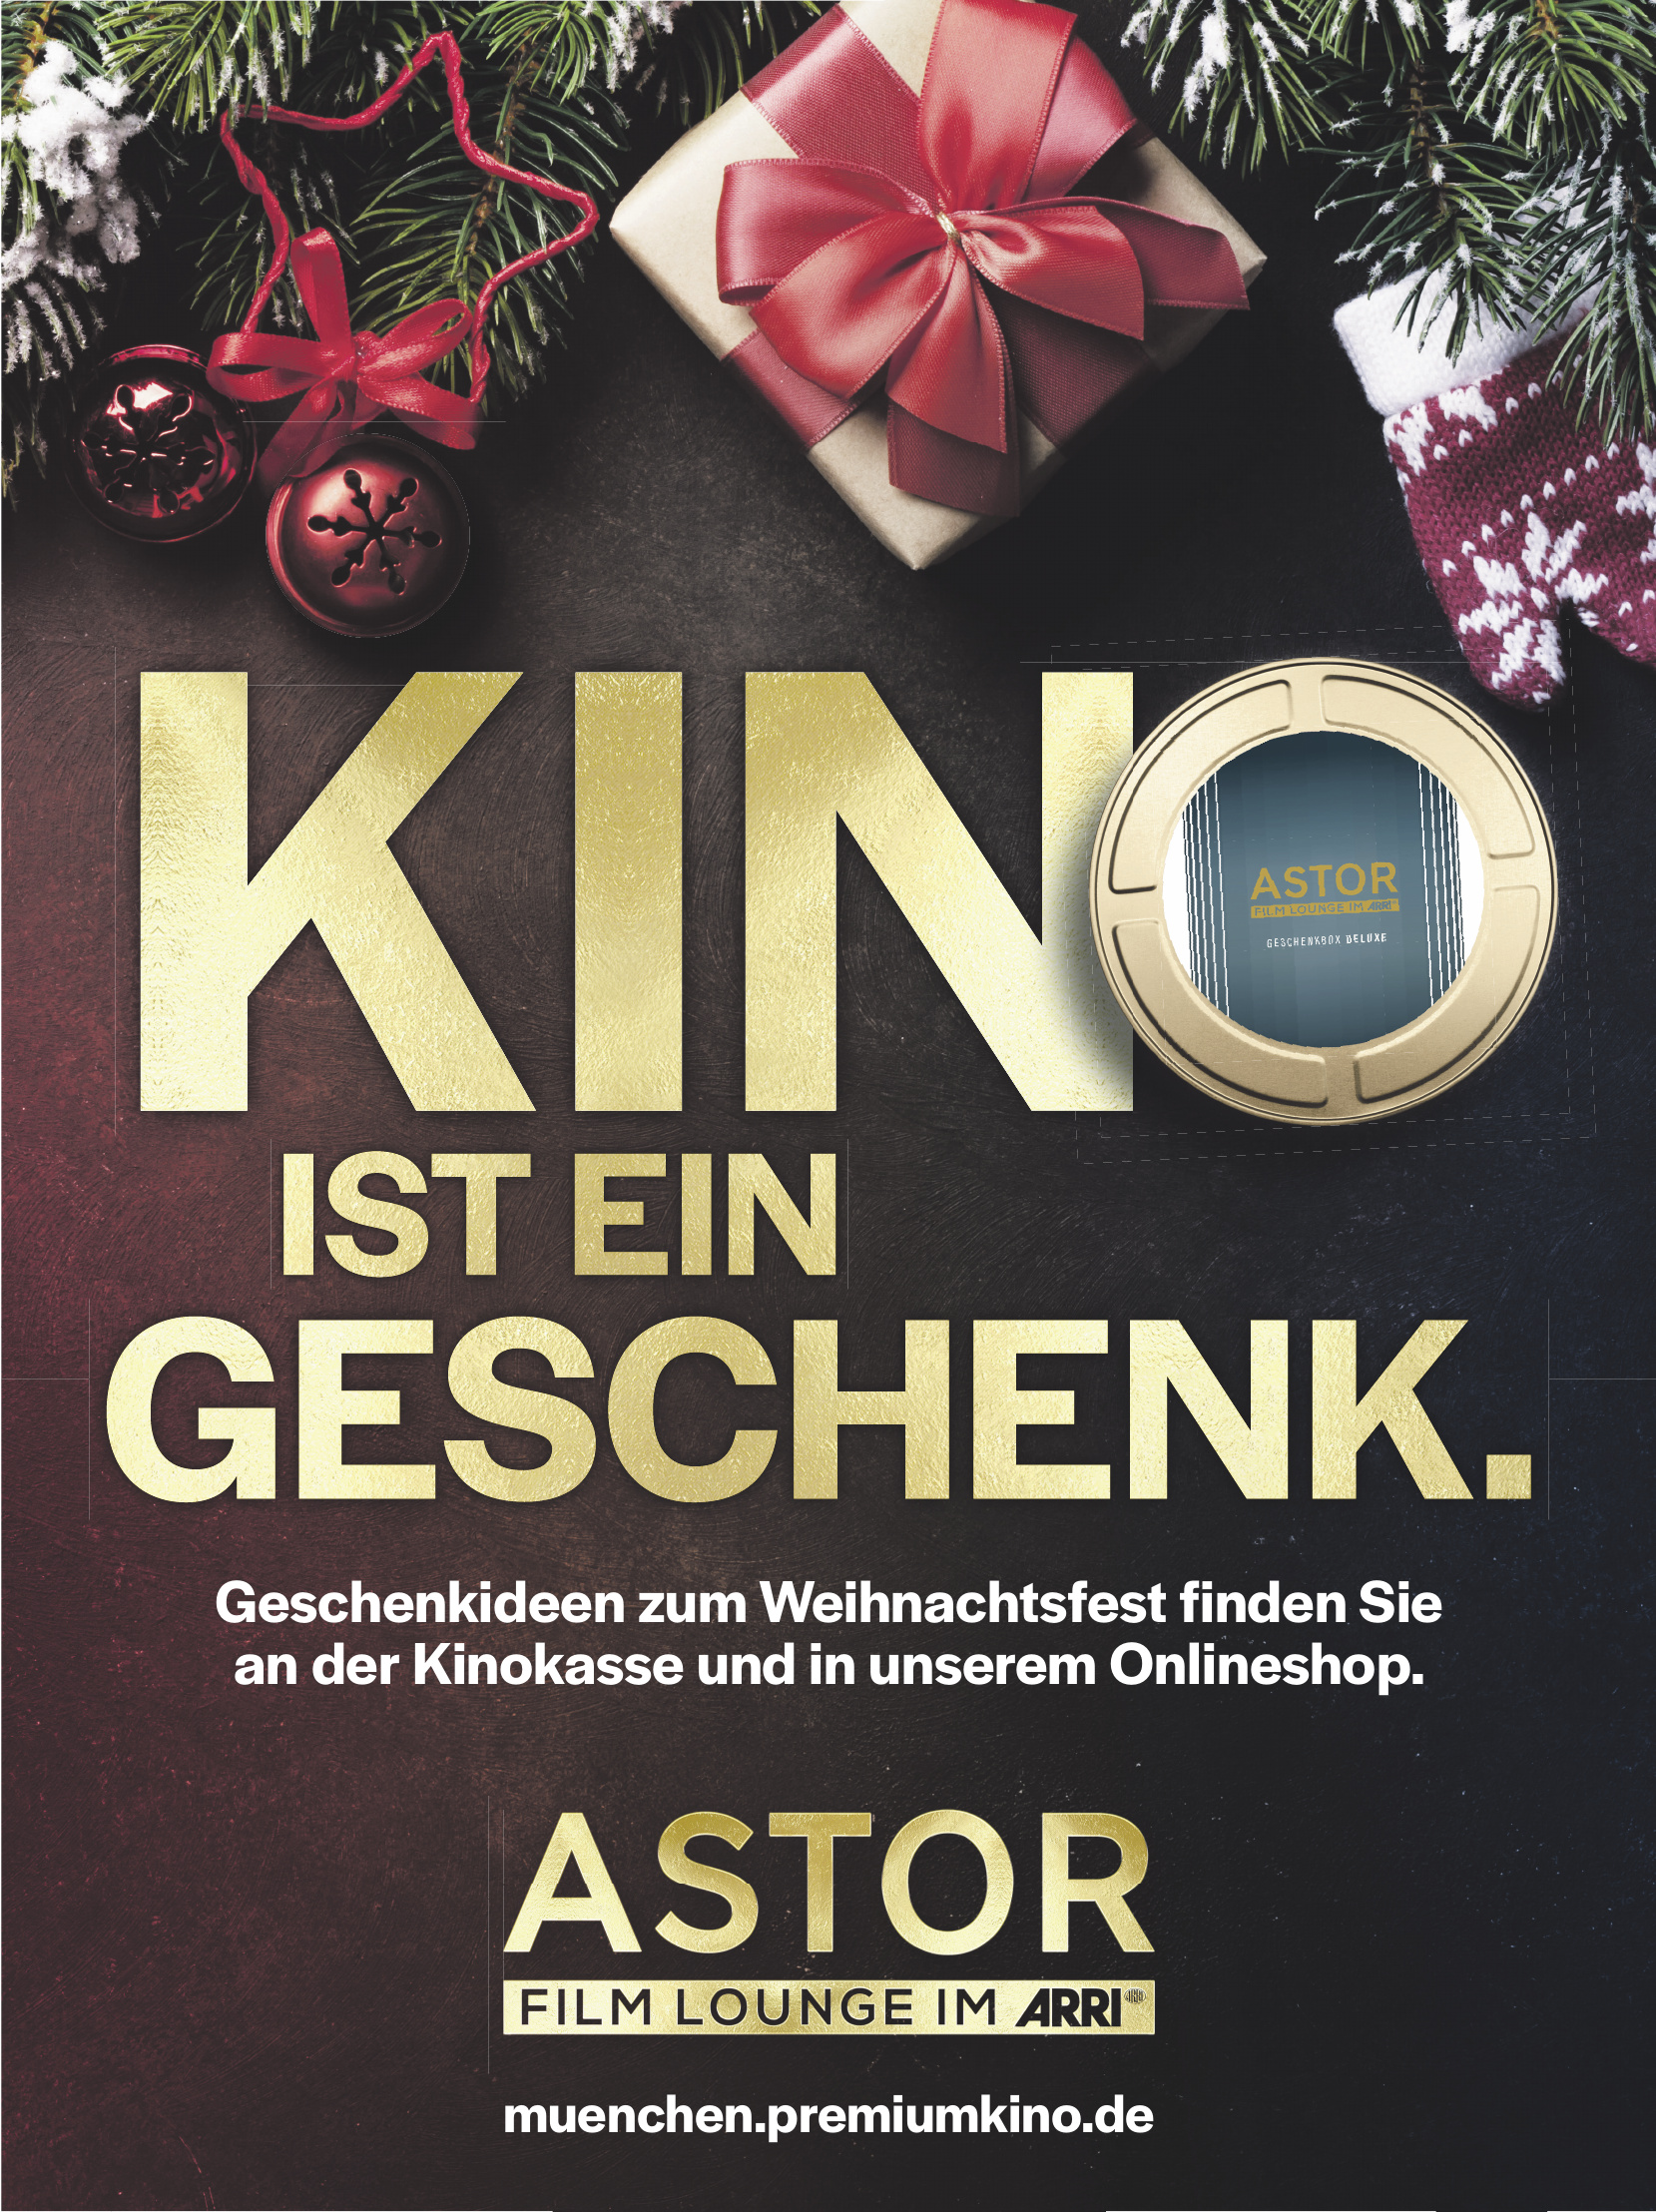 Astor Film Lounge im ARRI